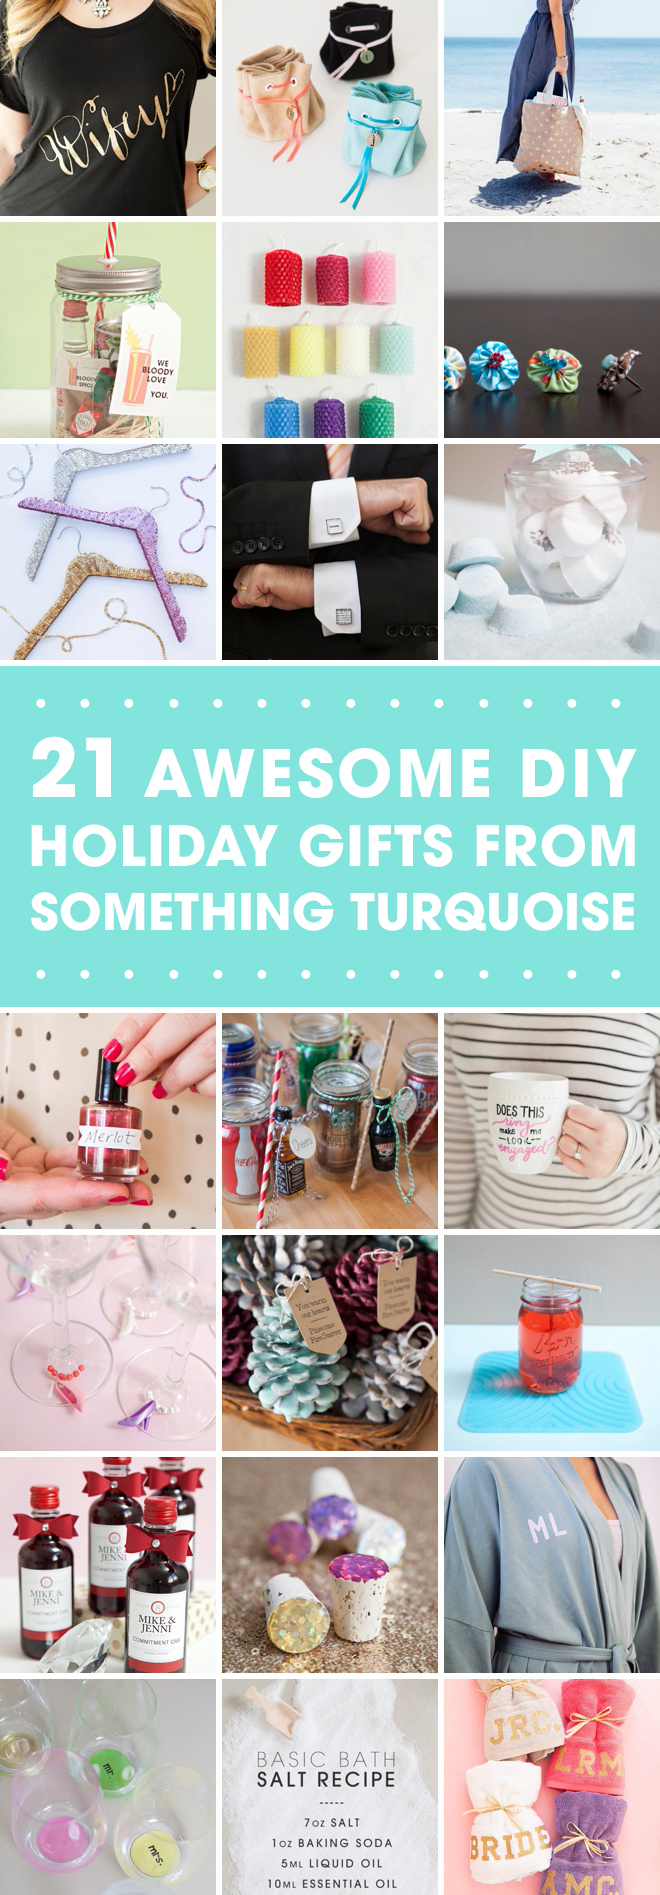 21 of our most awesome DIY wedding gifts that make fabulous HOLIDAY gifts!